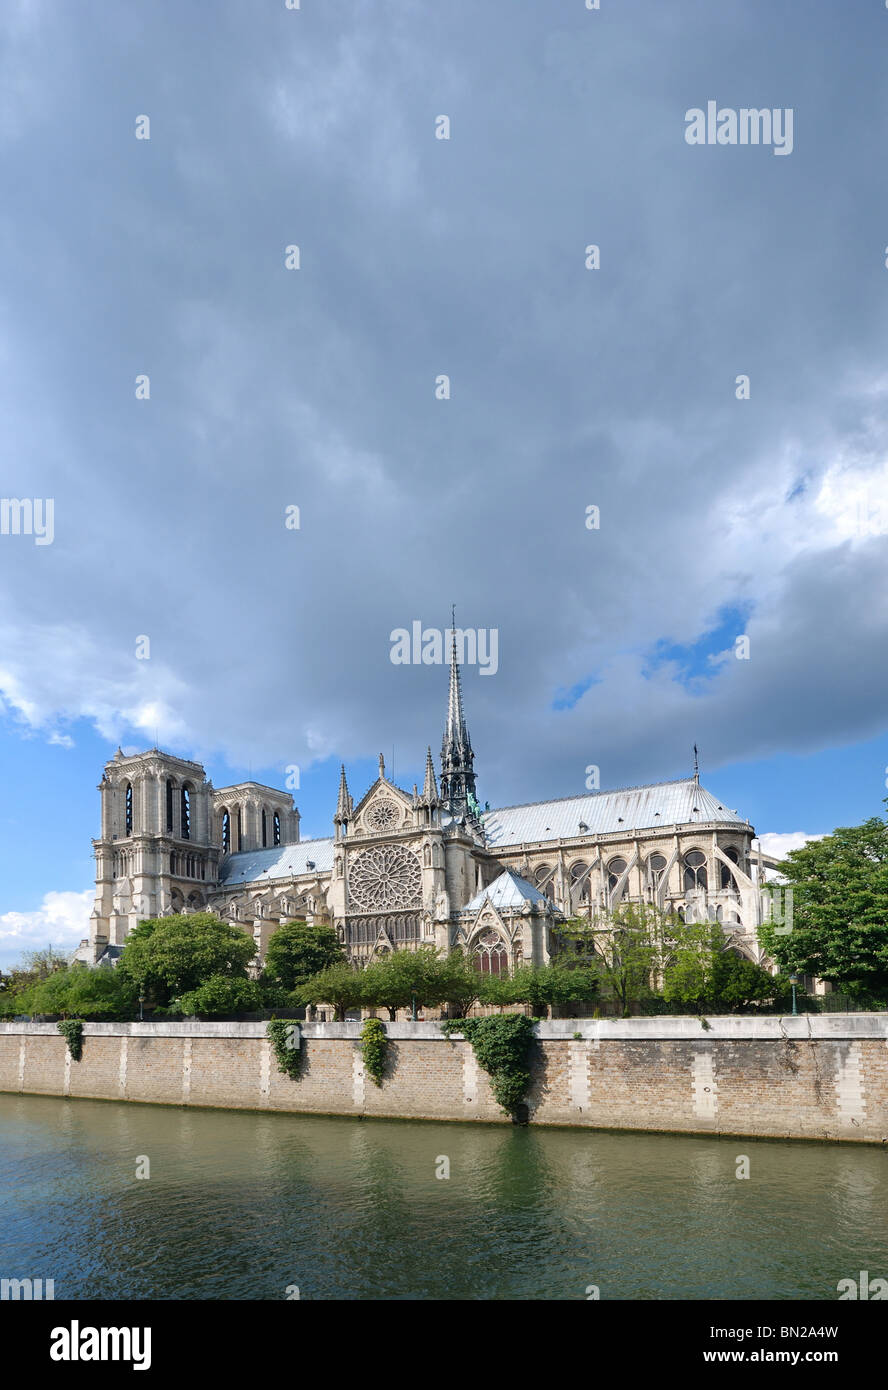 Notre Dame Cathedral view from Seine river - Stock Image